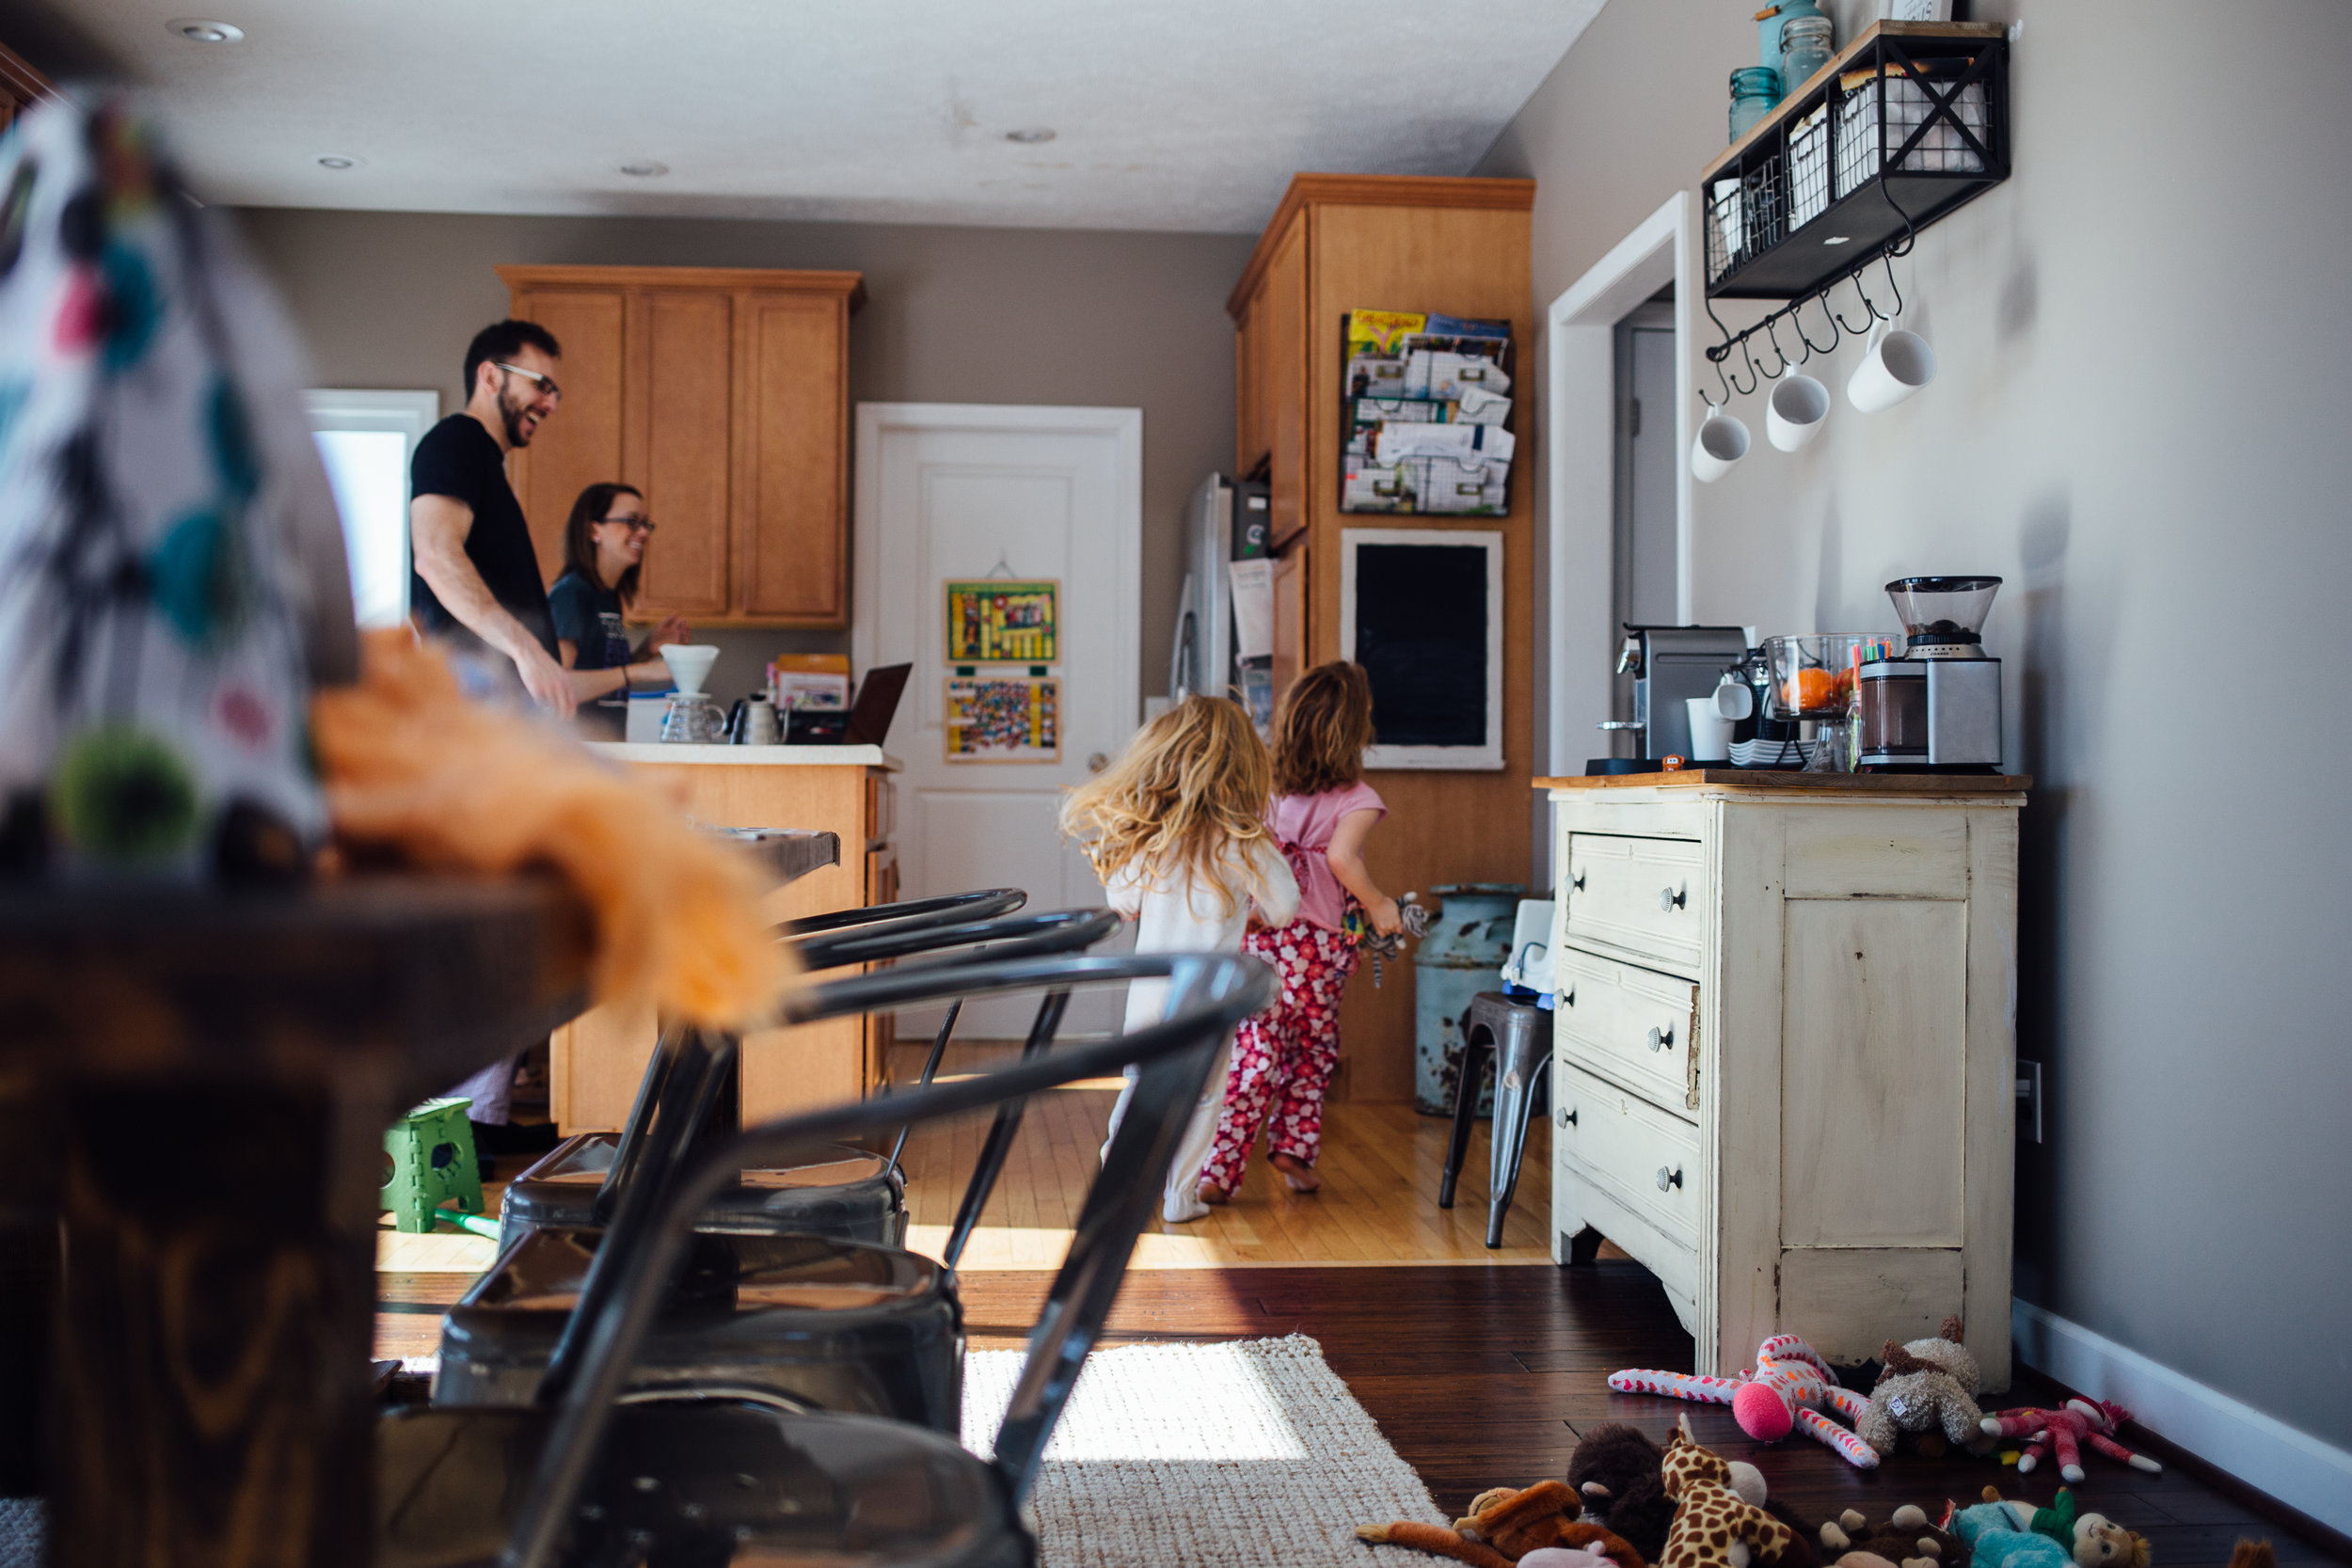 children running through house near galesburg mi while parents watch and laugh